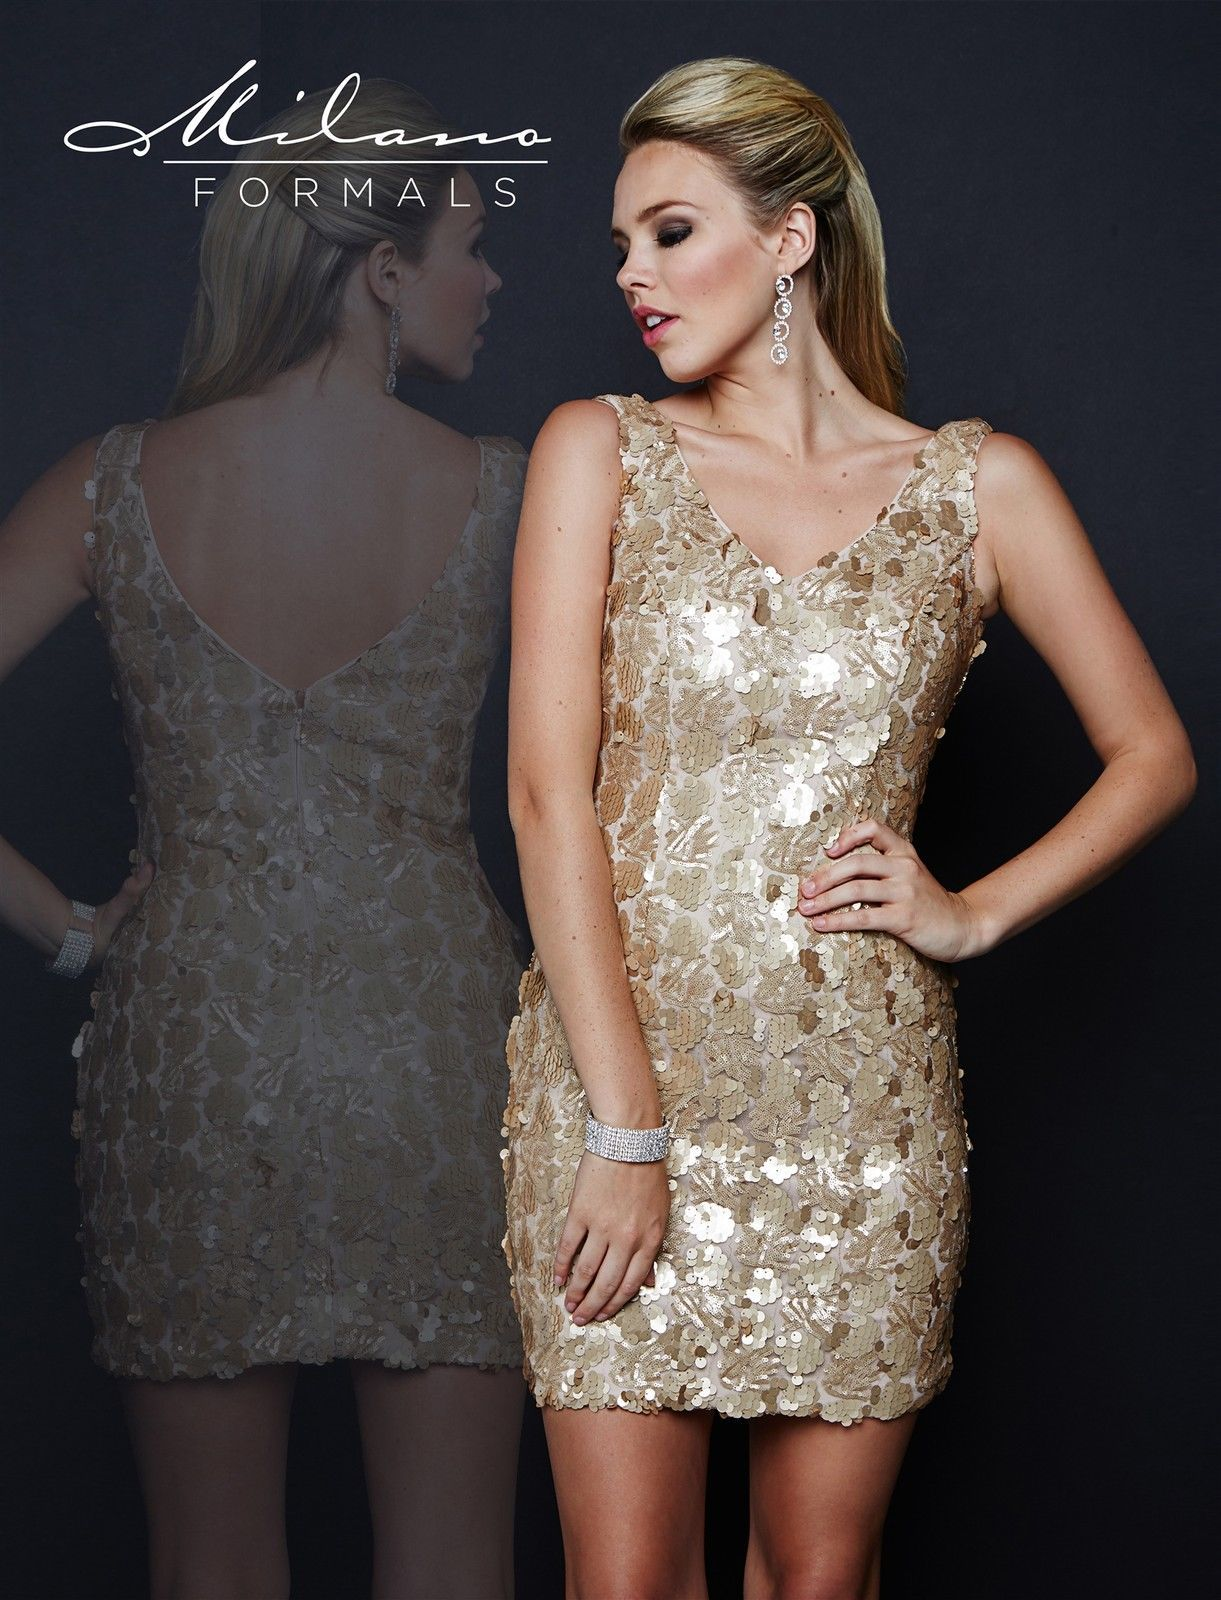 Milano Formals E1678 V-Neck Fitted Nude Gold Color Sequin Party Mini Dress 10